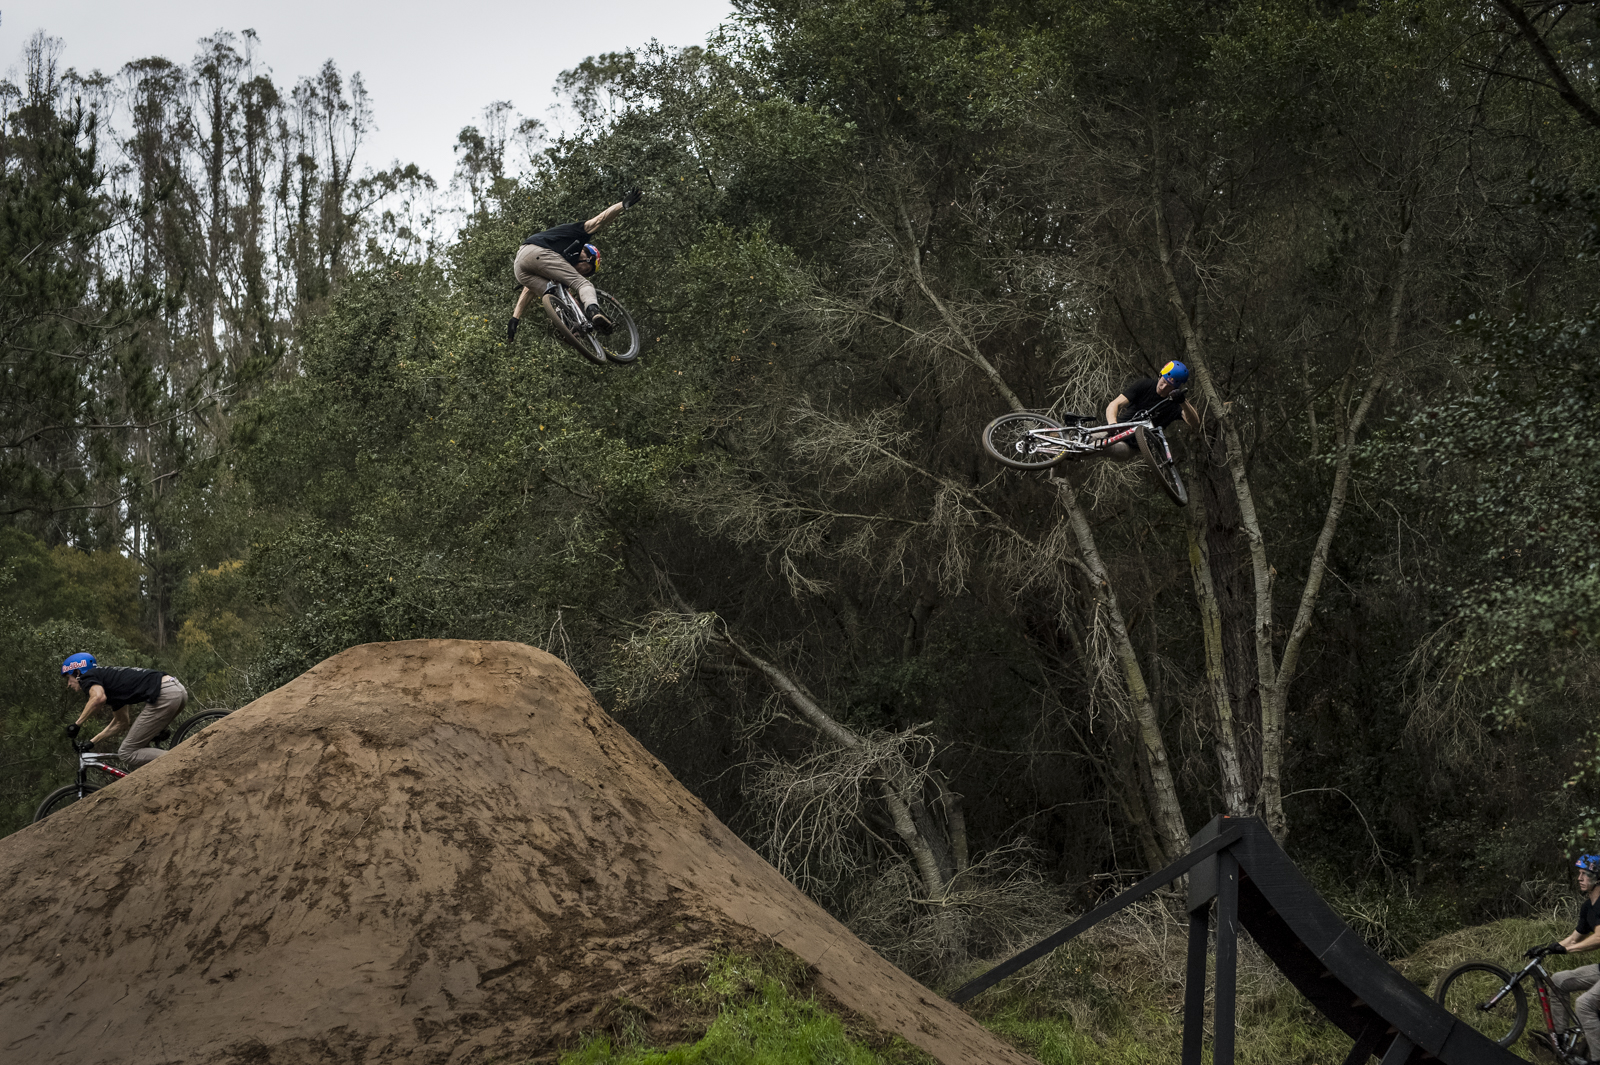 Perhaps the gnarliest combo we've witnessed - especially on a jump this small; it didn't come easy. 360 tailwhip to tuck no hander. Minds blown.